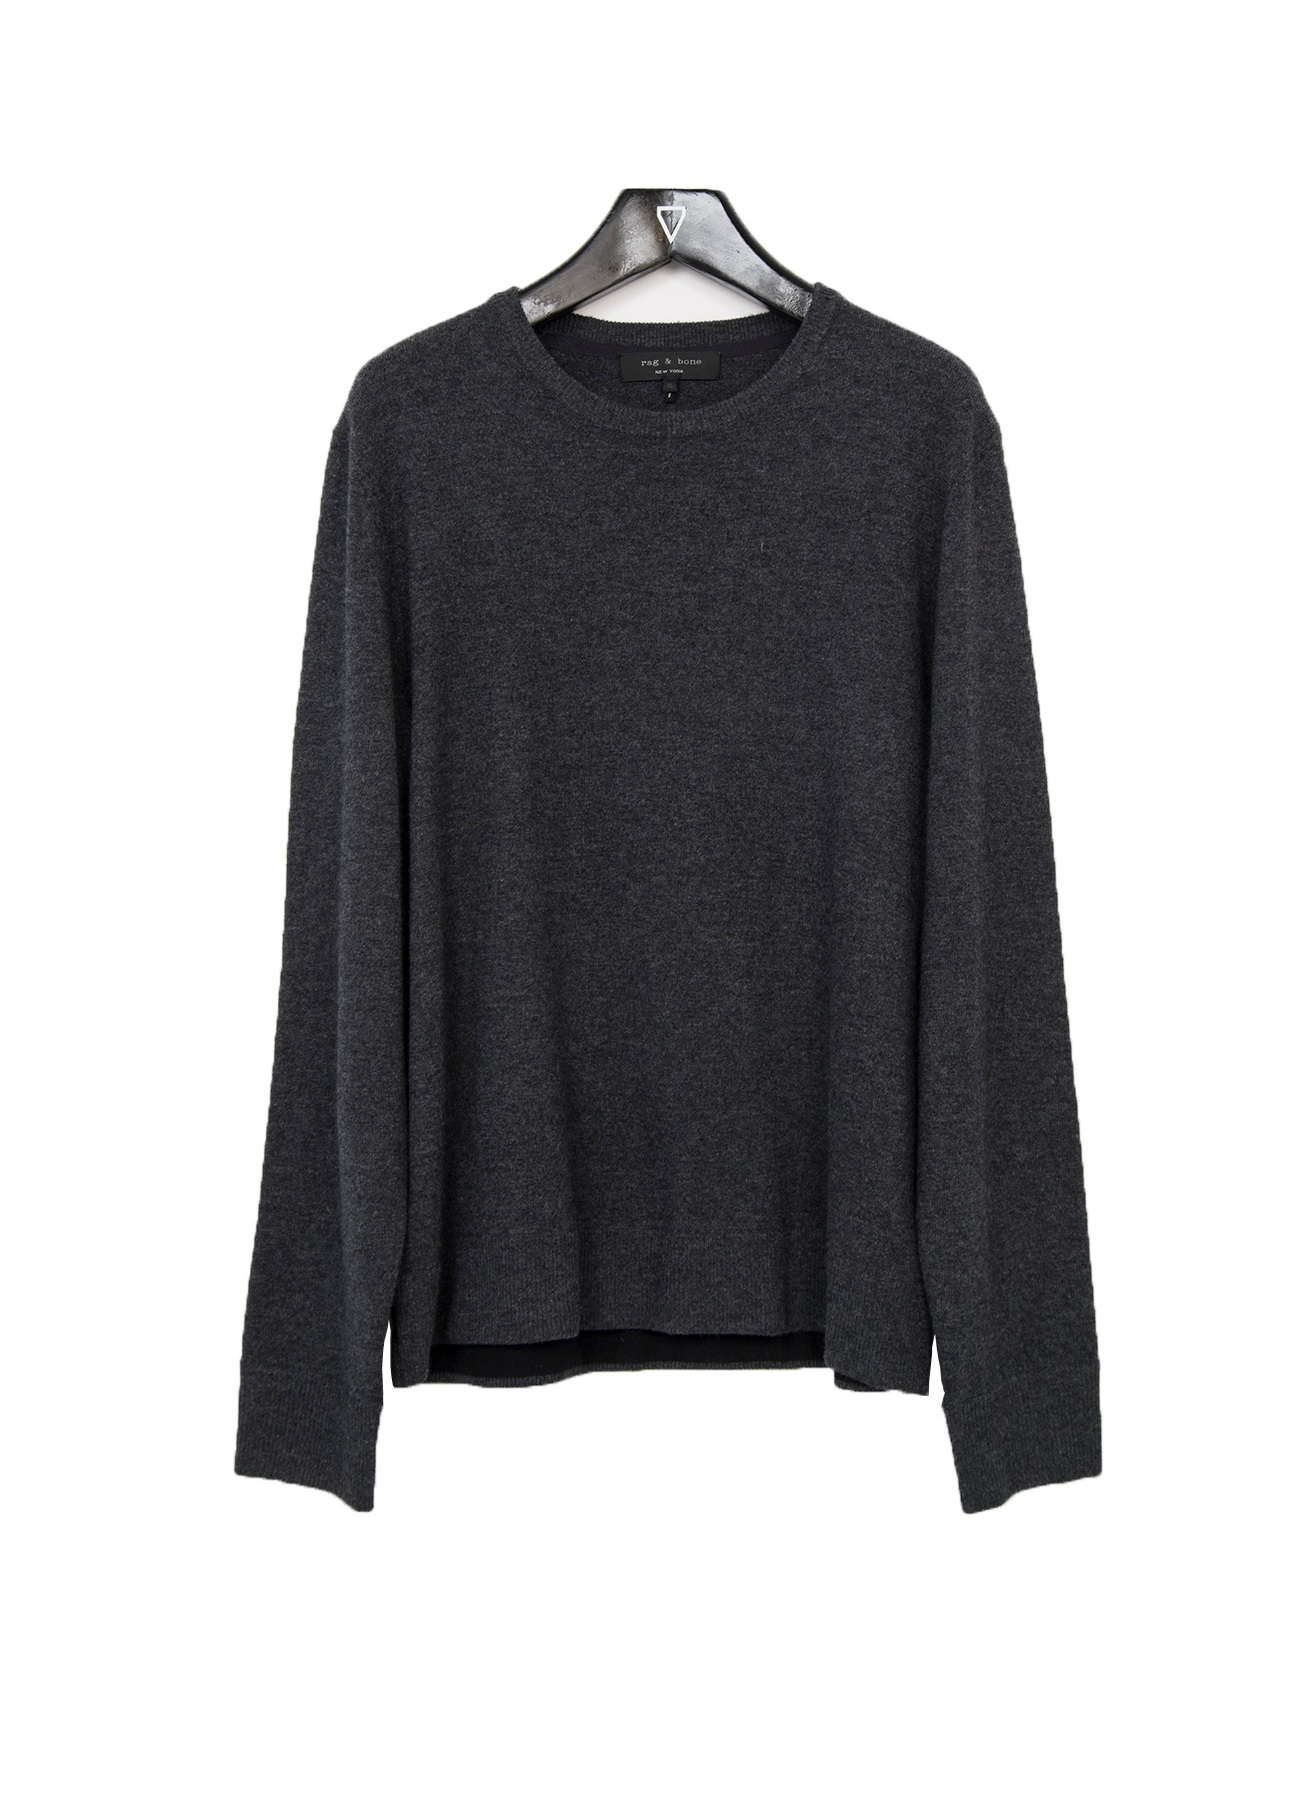 "42 RAG & BONE SWEATER ""RAG-KNT01"""